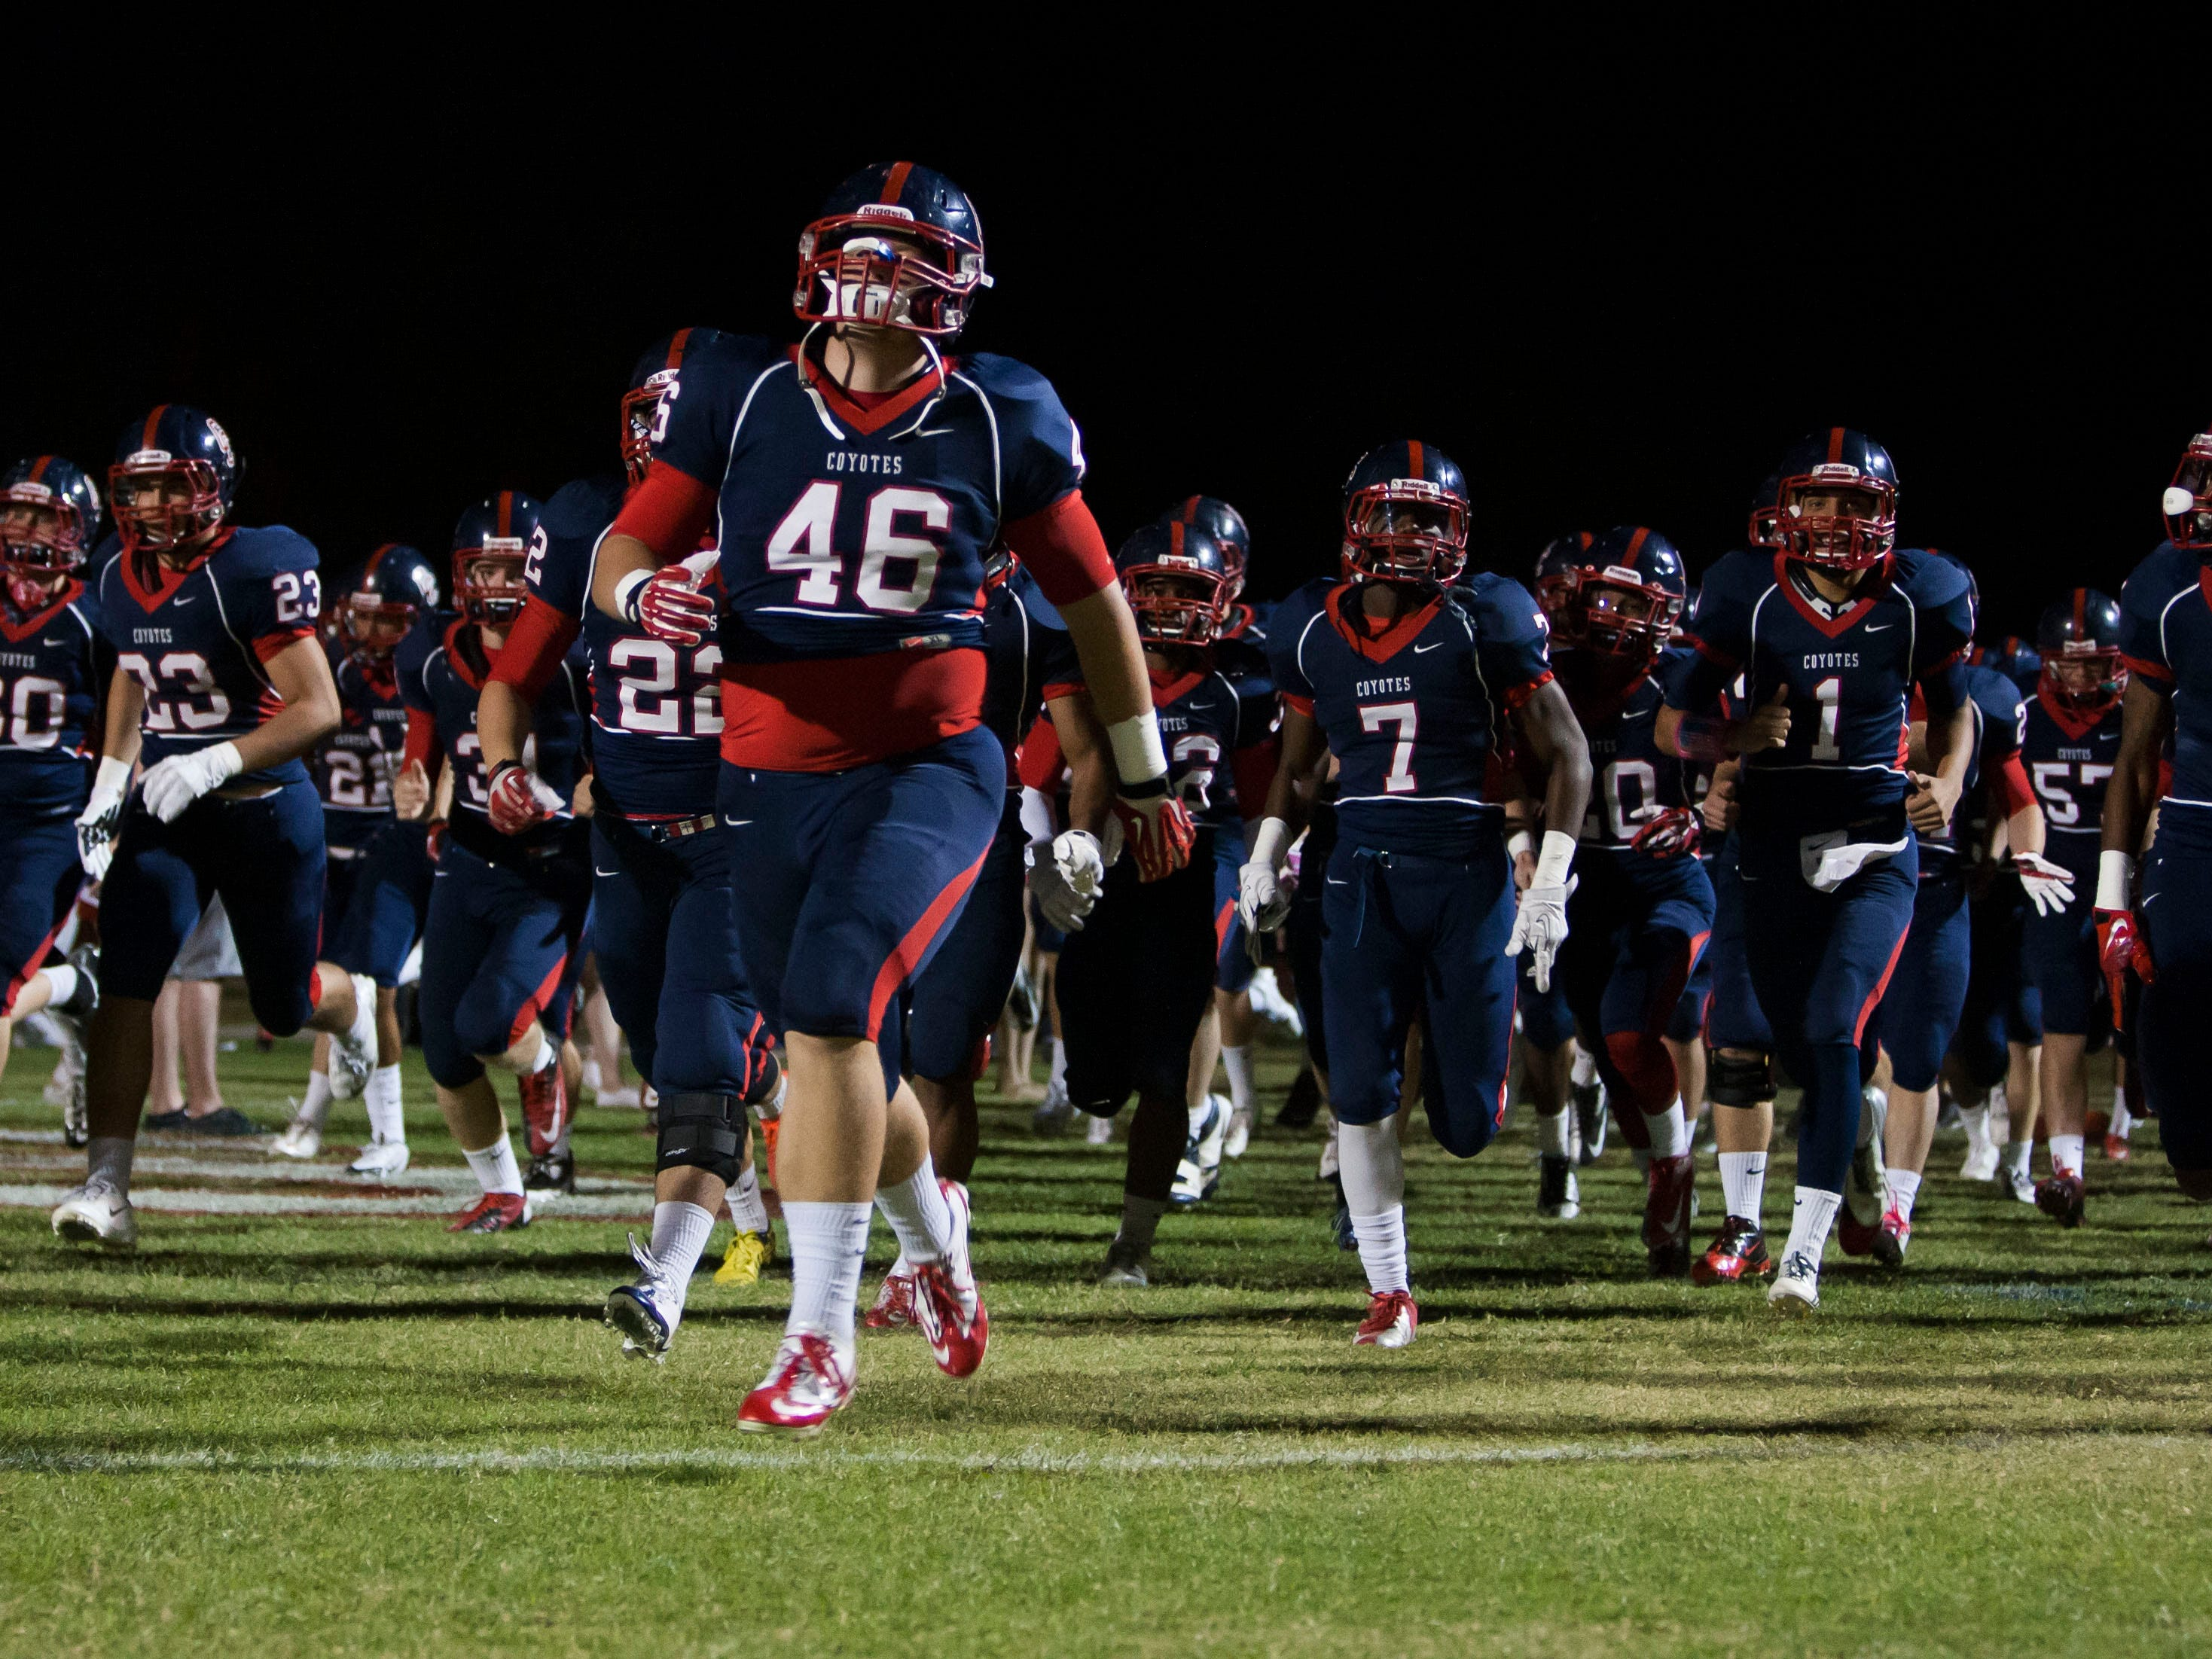 """Division II Centennial will field what coach Richard Taylor called the """"strongest physical team we've ever had."""""""